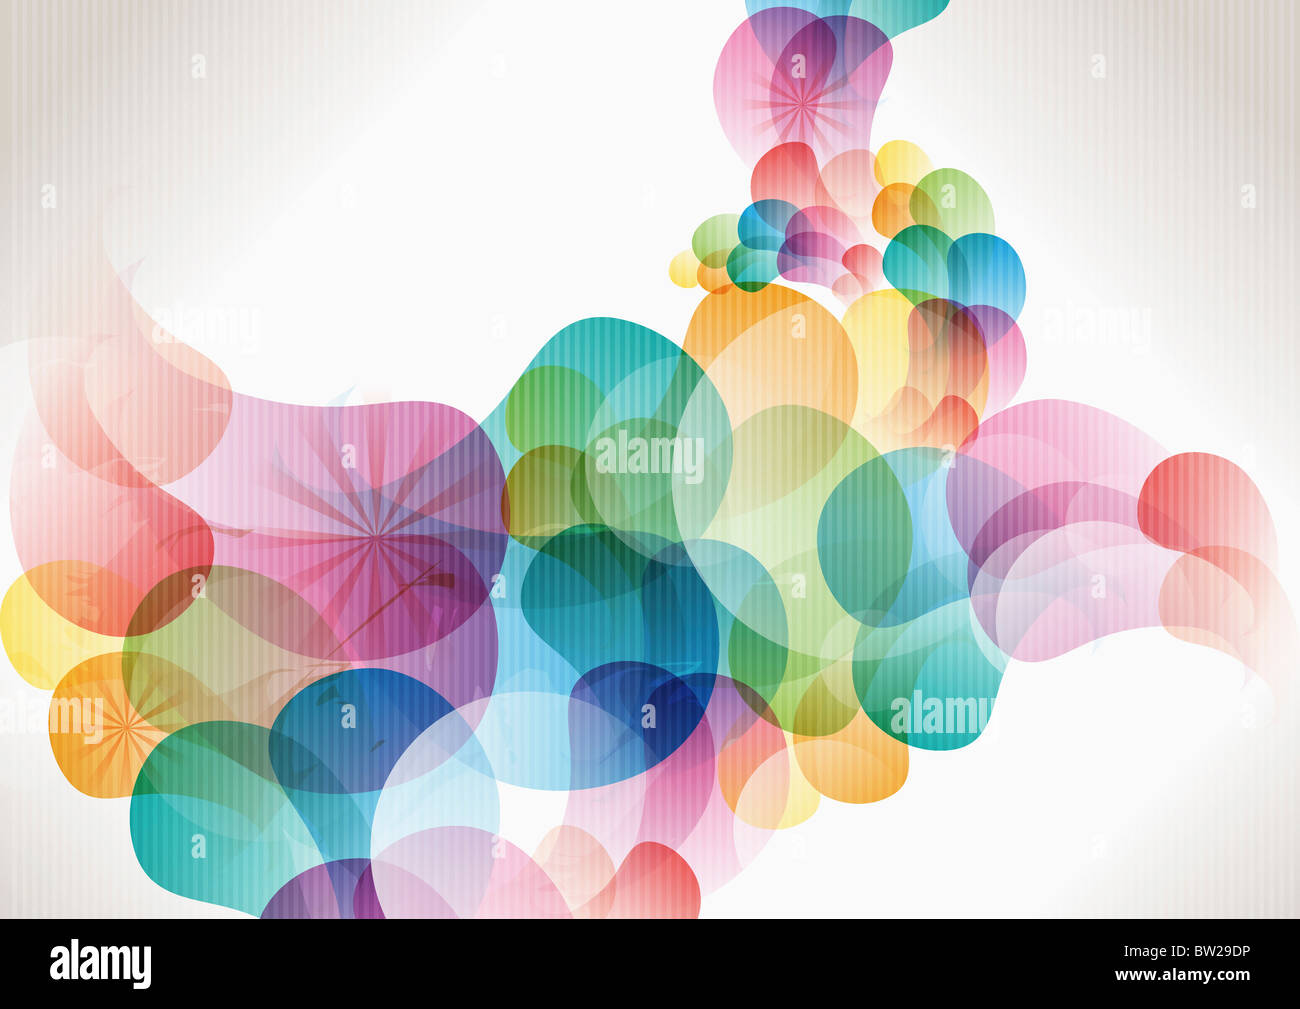 colorful circled pattern - Stock Image